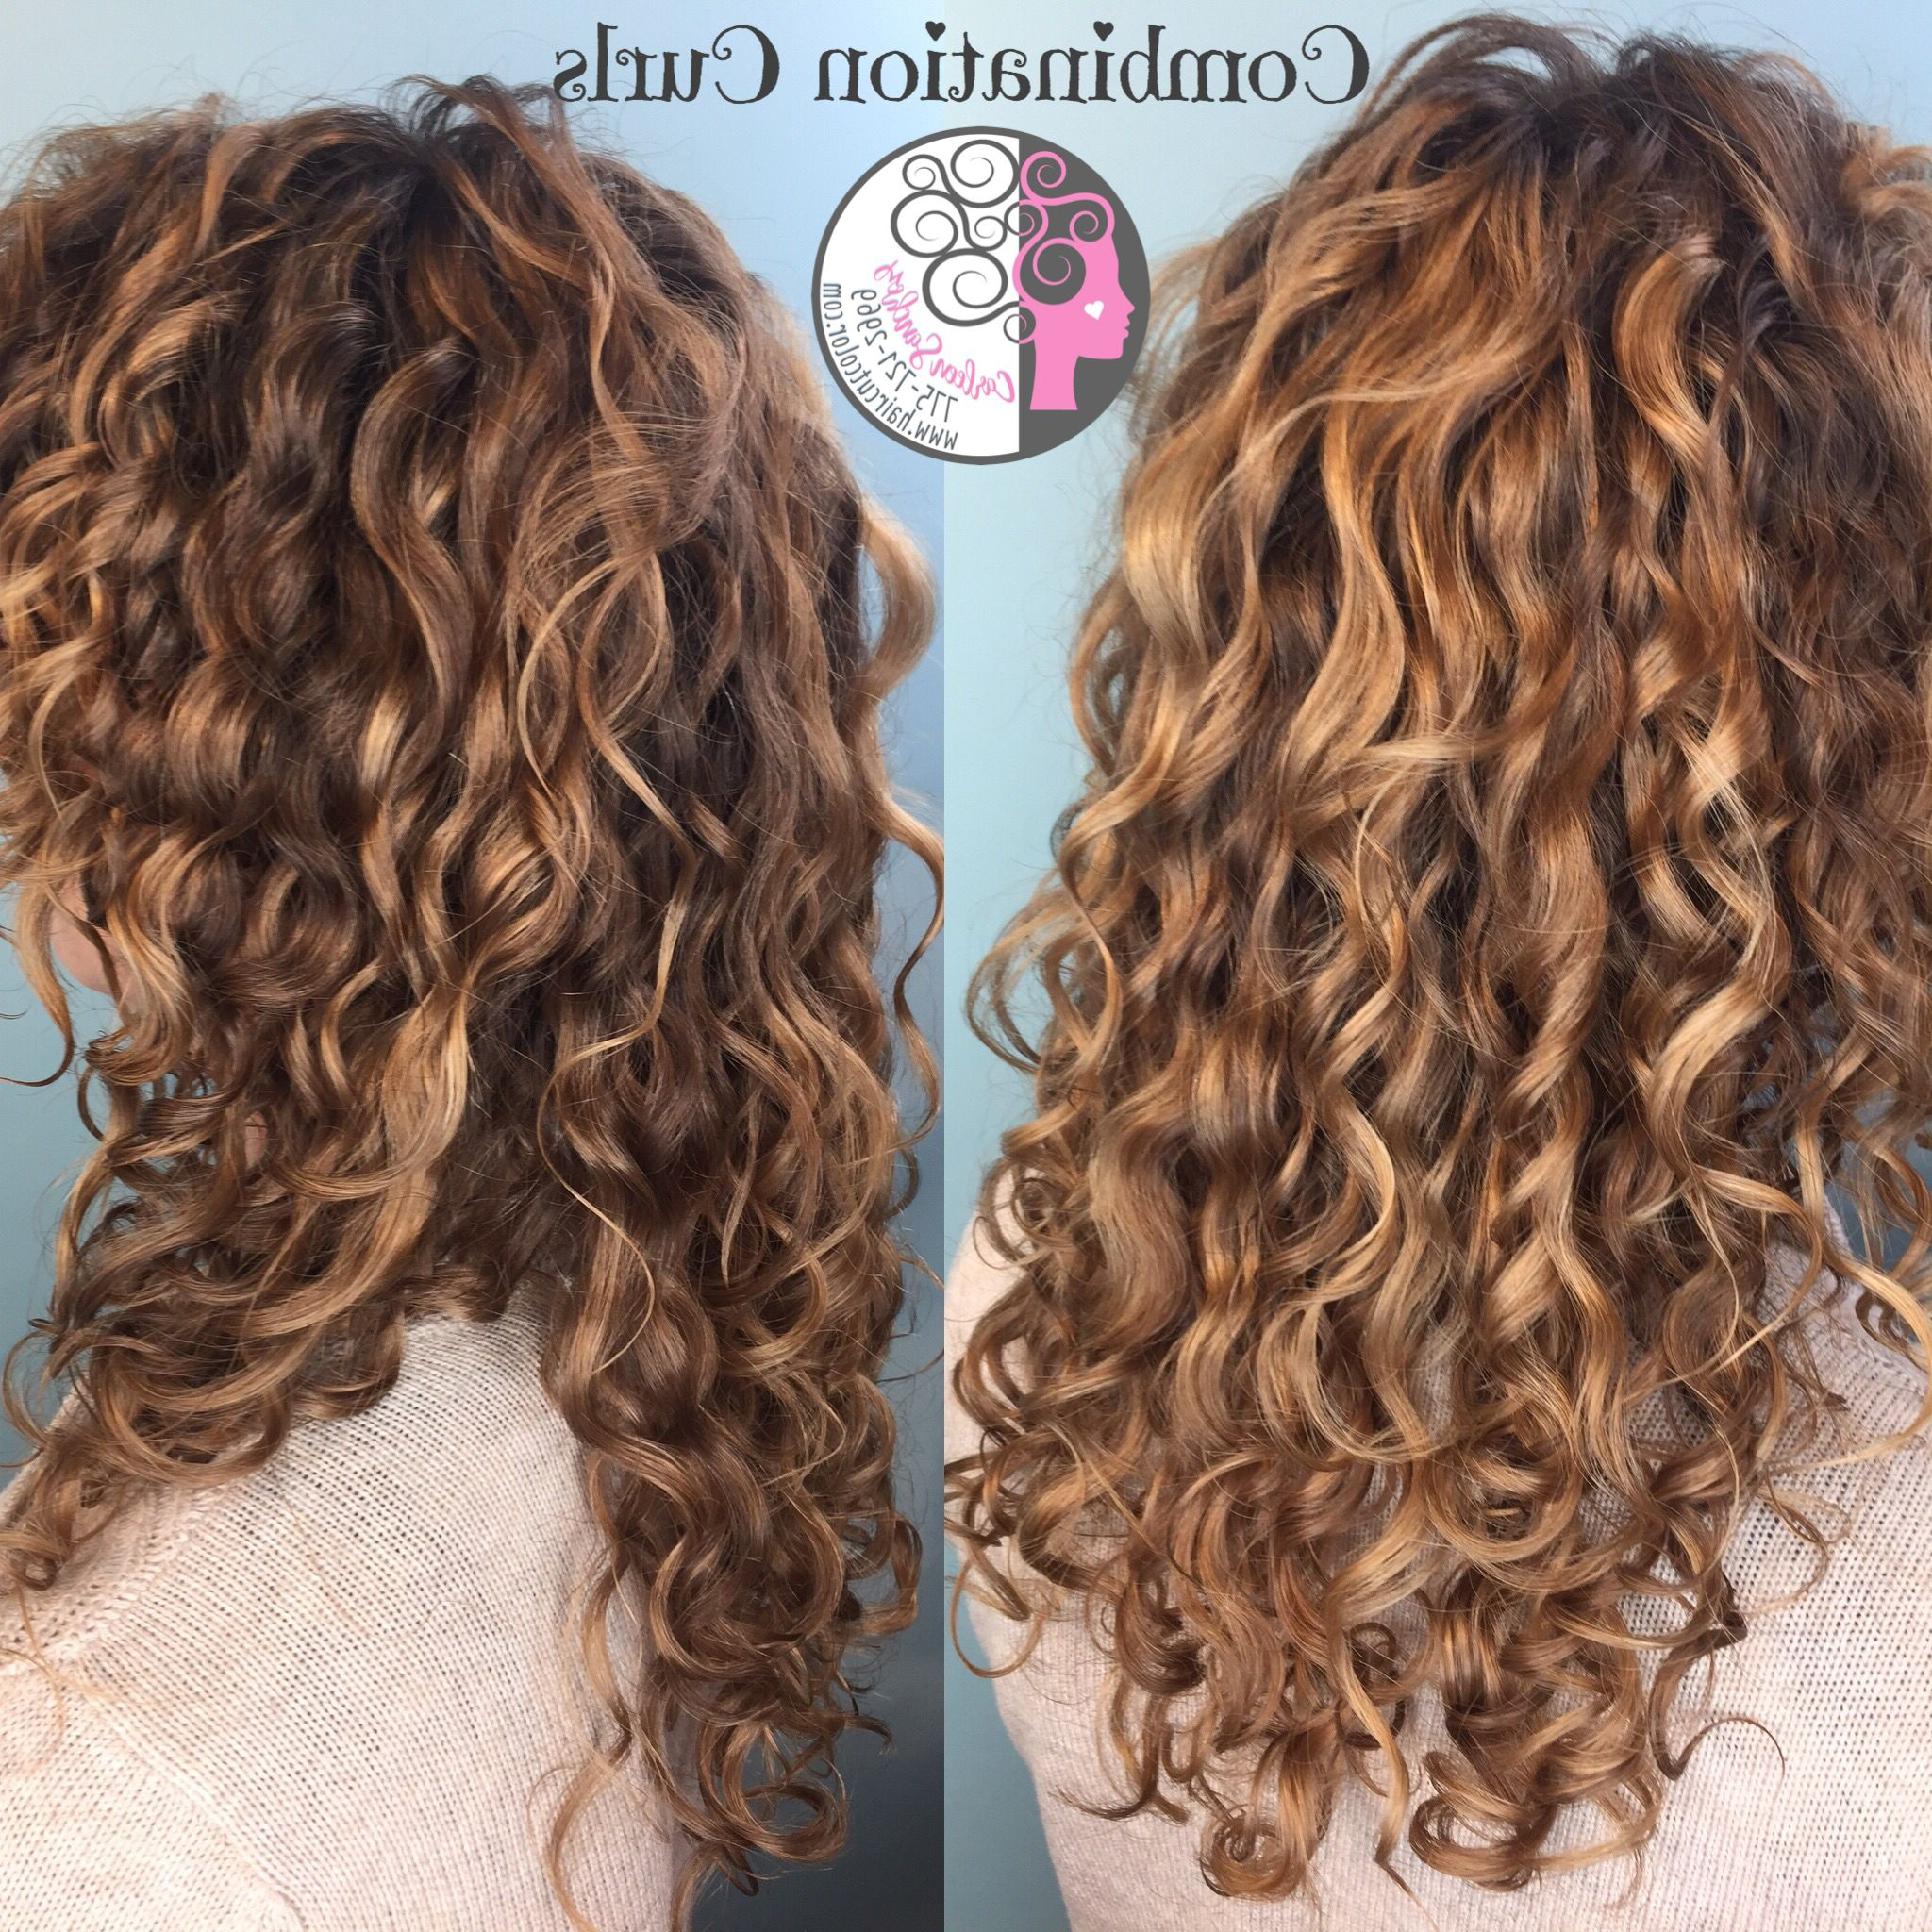 Hairstyles : Curly Brown Hair With Highlights Astounding Pintura And Regarding Well Known Curly Golden Brown Balayage Long Hairstyles (View 16 of 20)